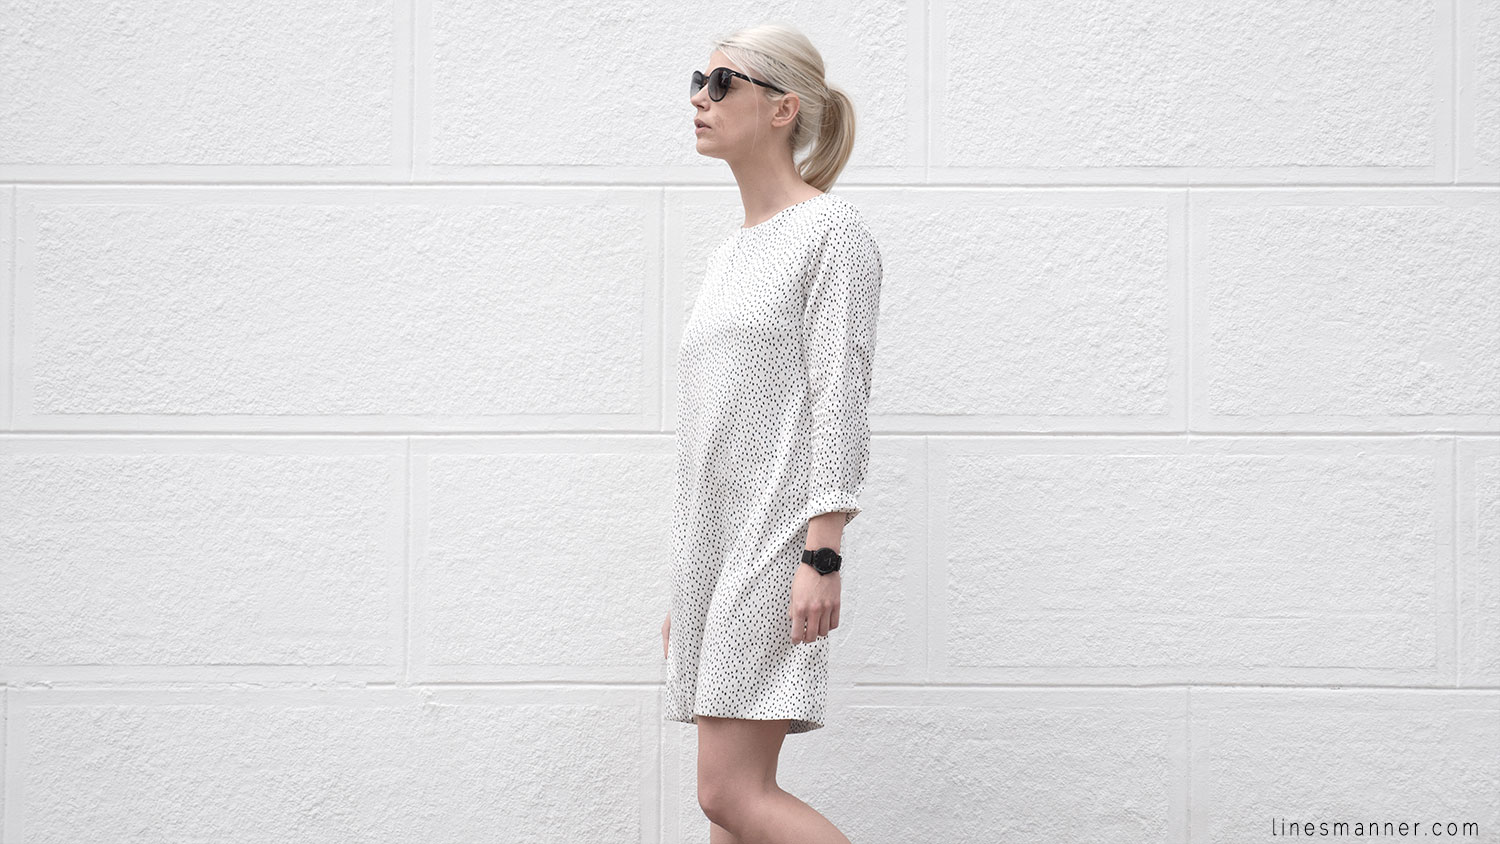 Lines-Manner-Minimal-Oldies-Dress-Sandro-Timeless-Design-Black_and_White-Details-Simplicity-Essential-Summer-Print-Quality-Wardrobe-5